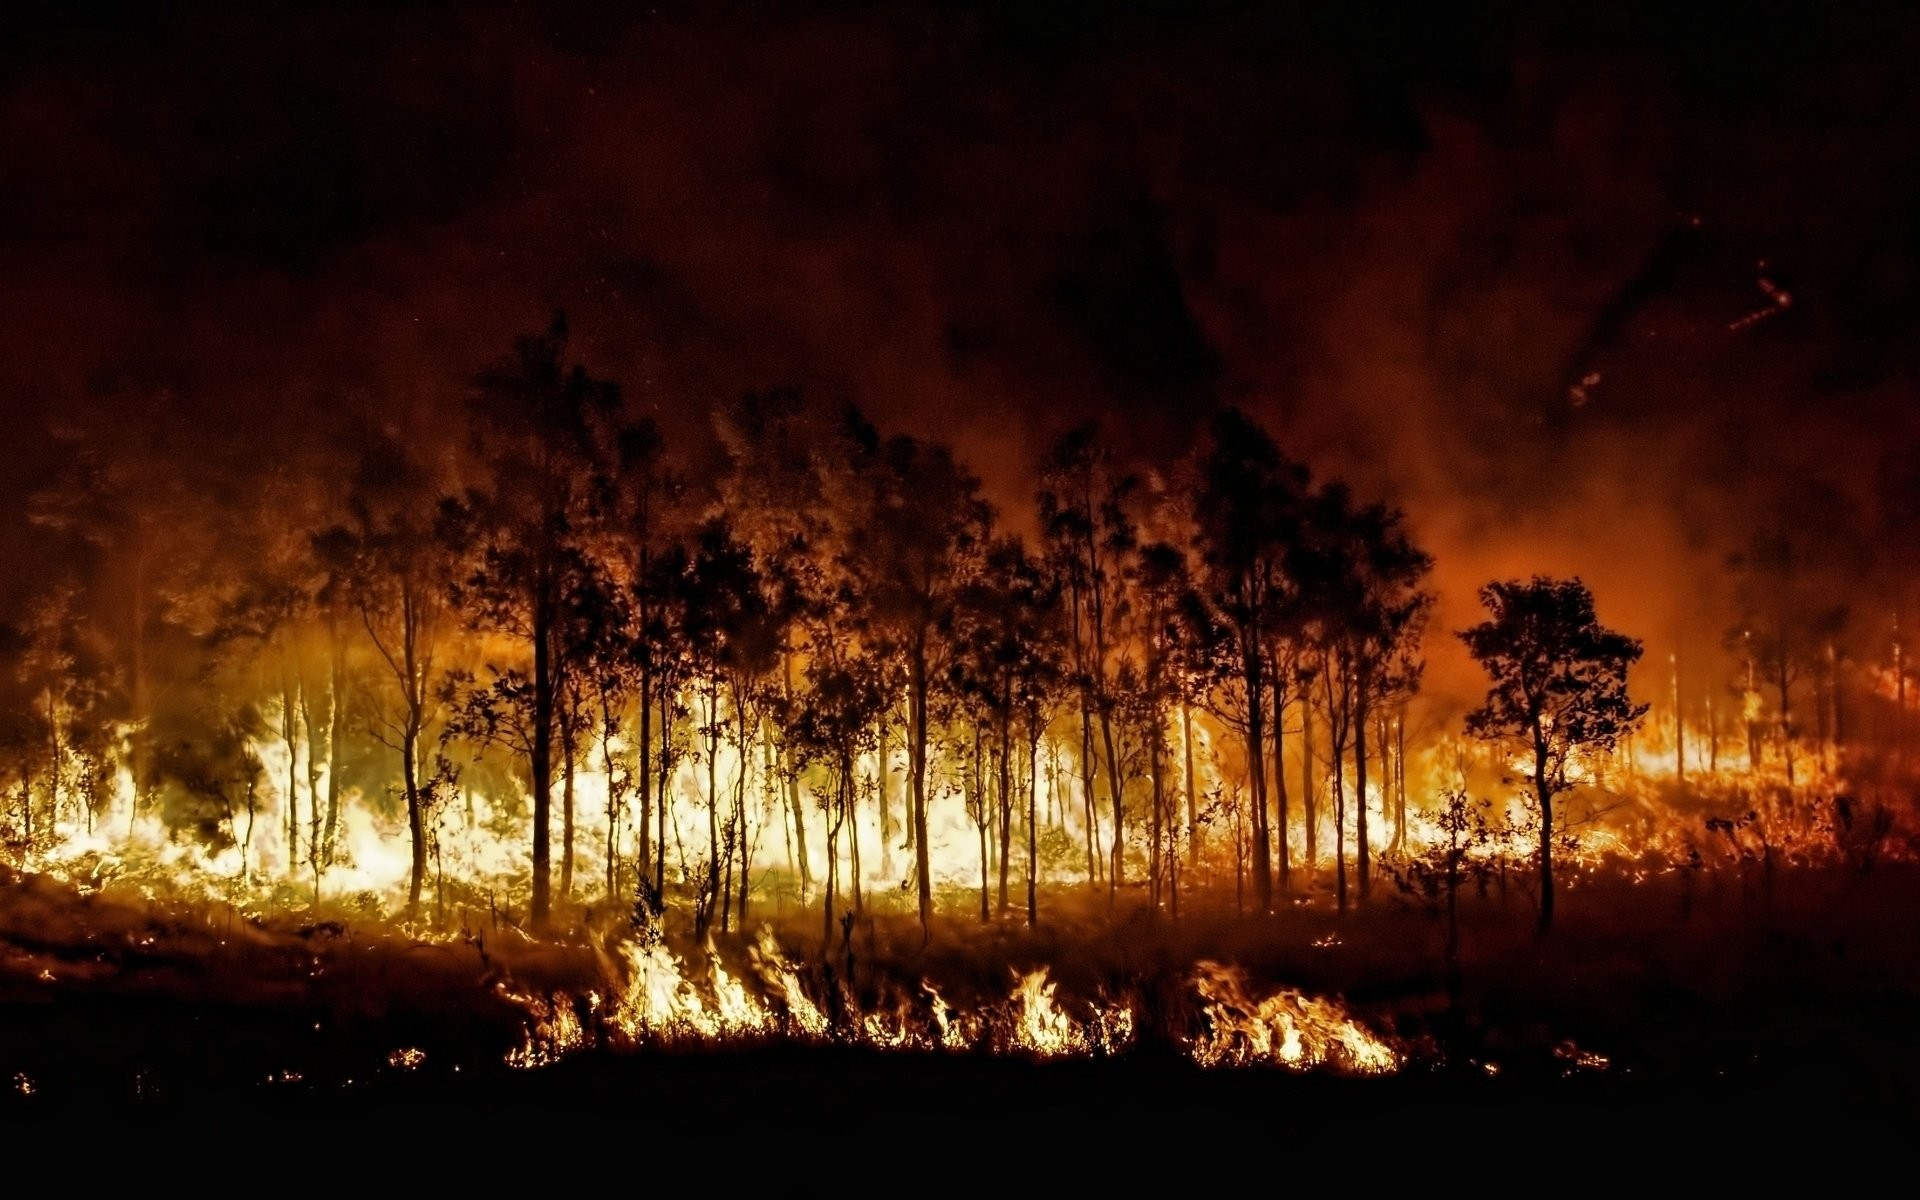 Forest Fire Wallpaper 54 Images